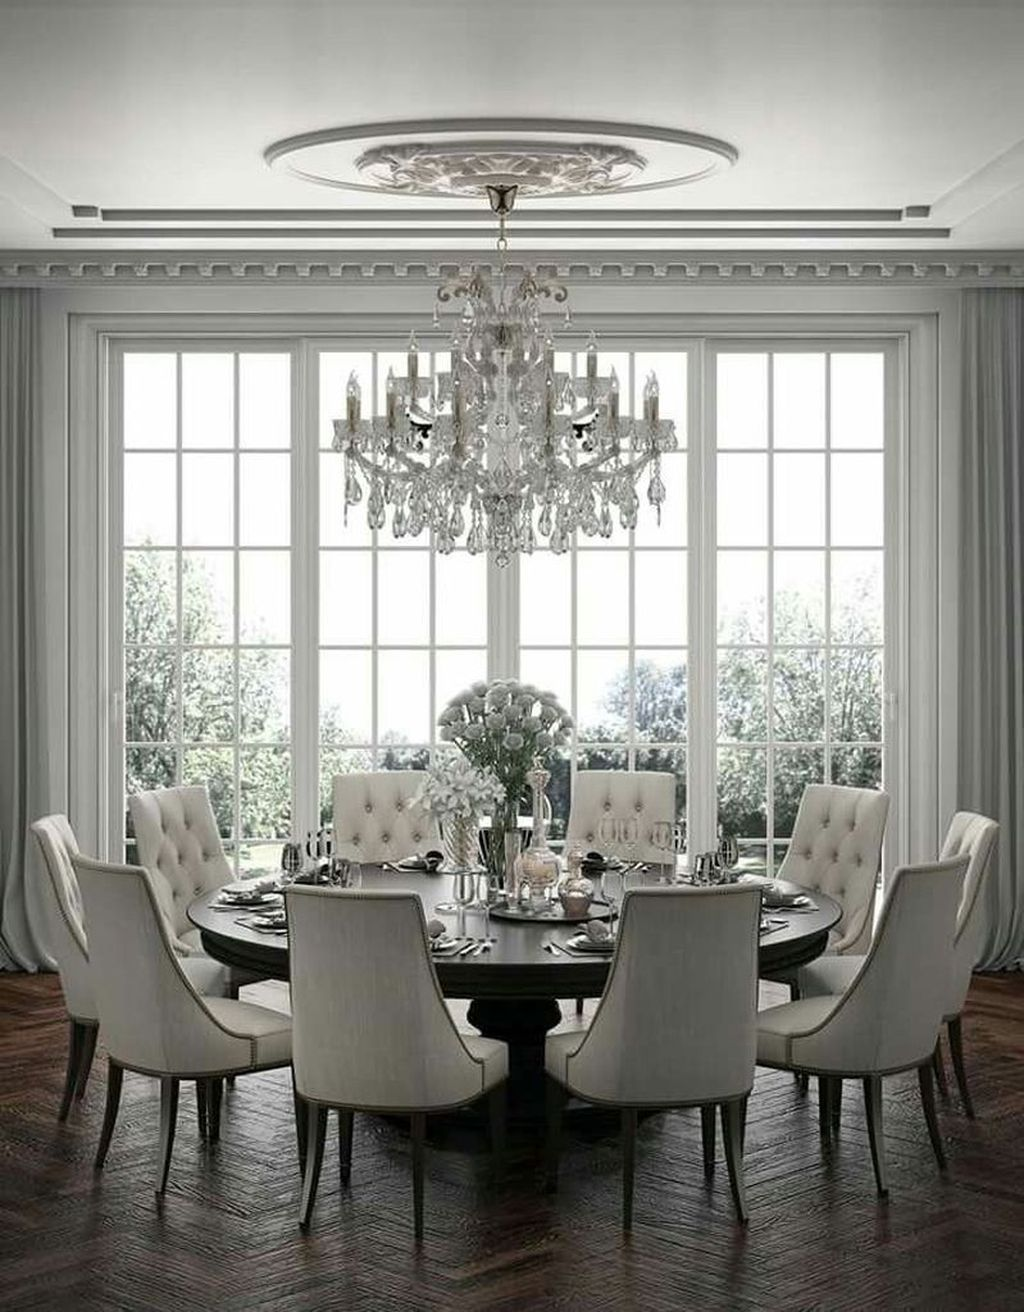 40 Cozy Dining Room Design Ideas That Looks Awesome Elegant Dining Room Dining Room Cozy Beautiful Dining Rooms